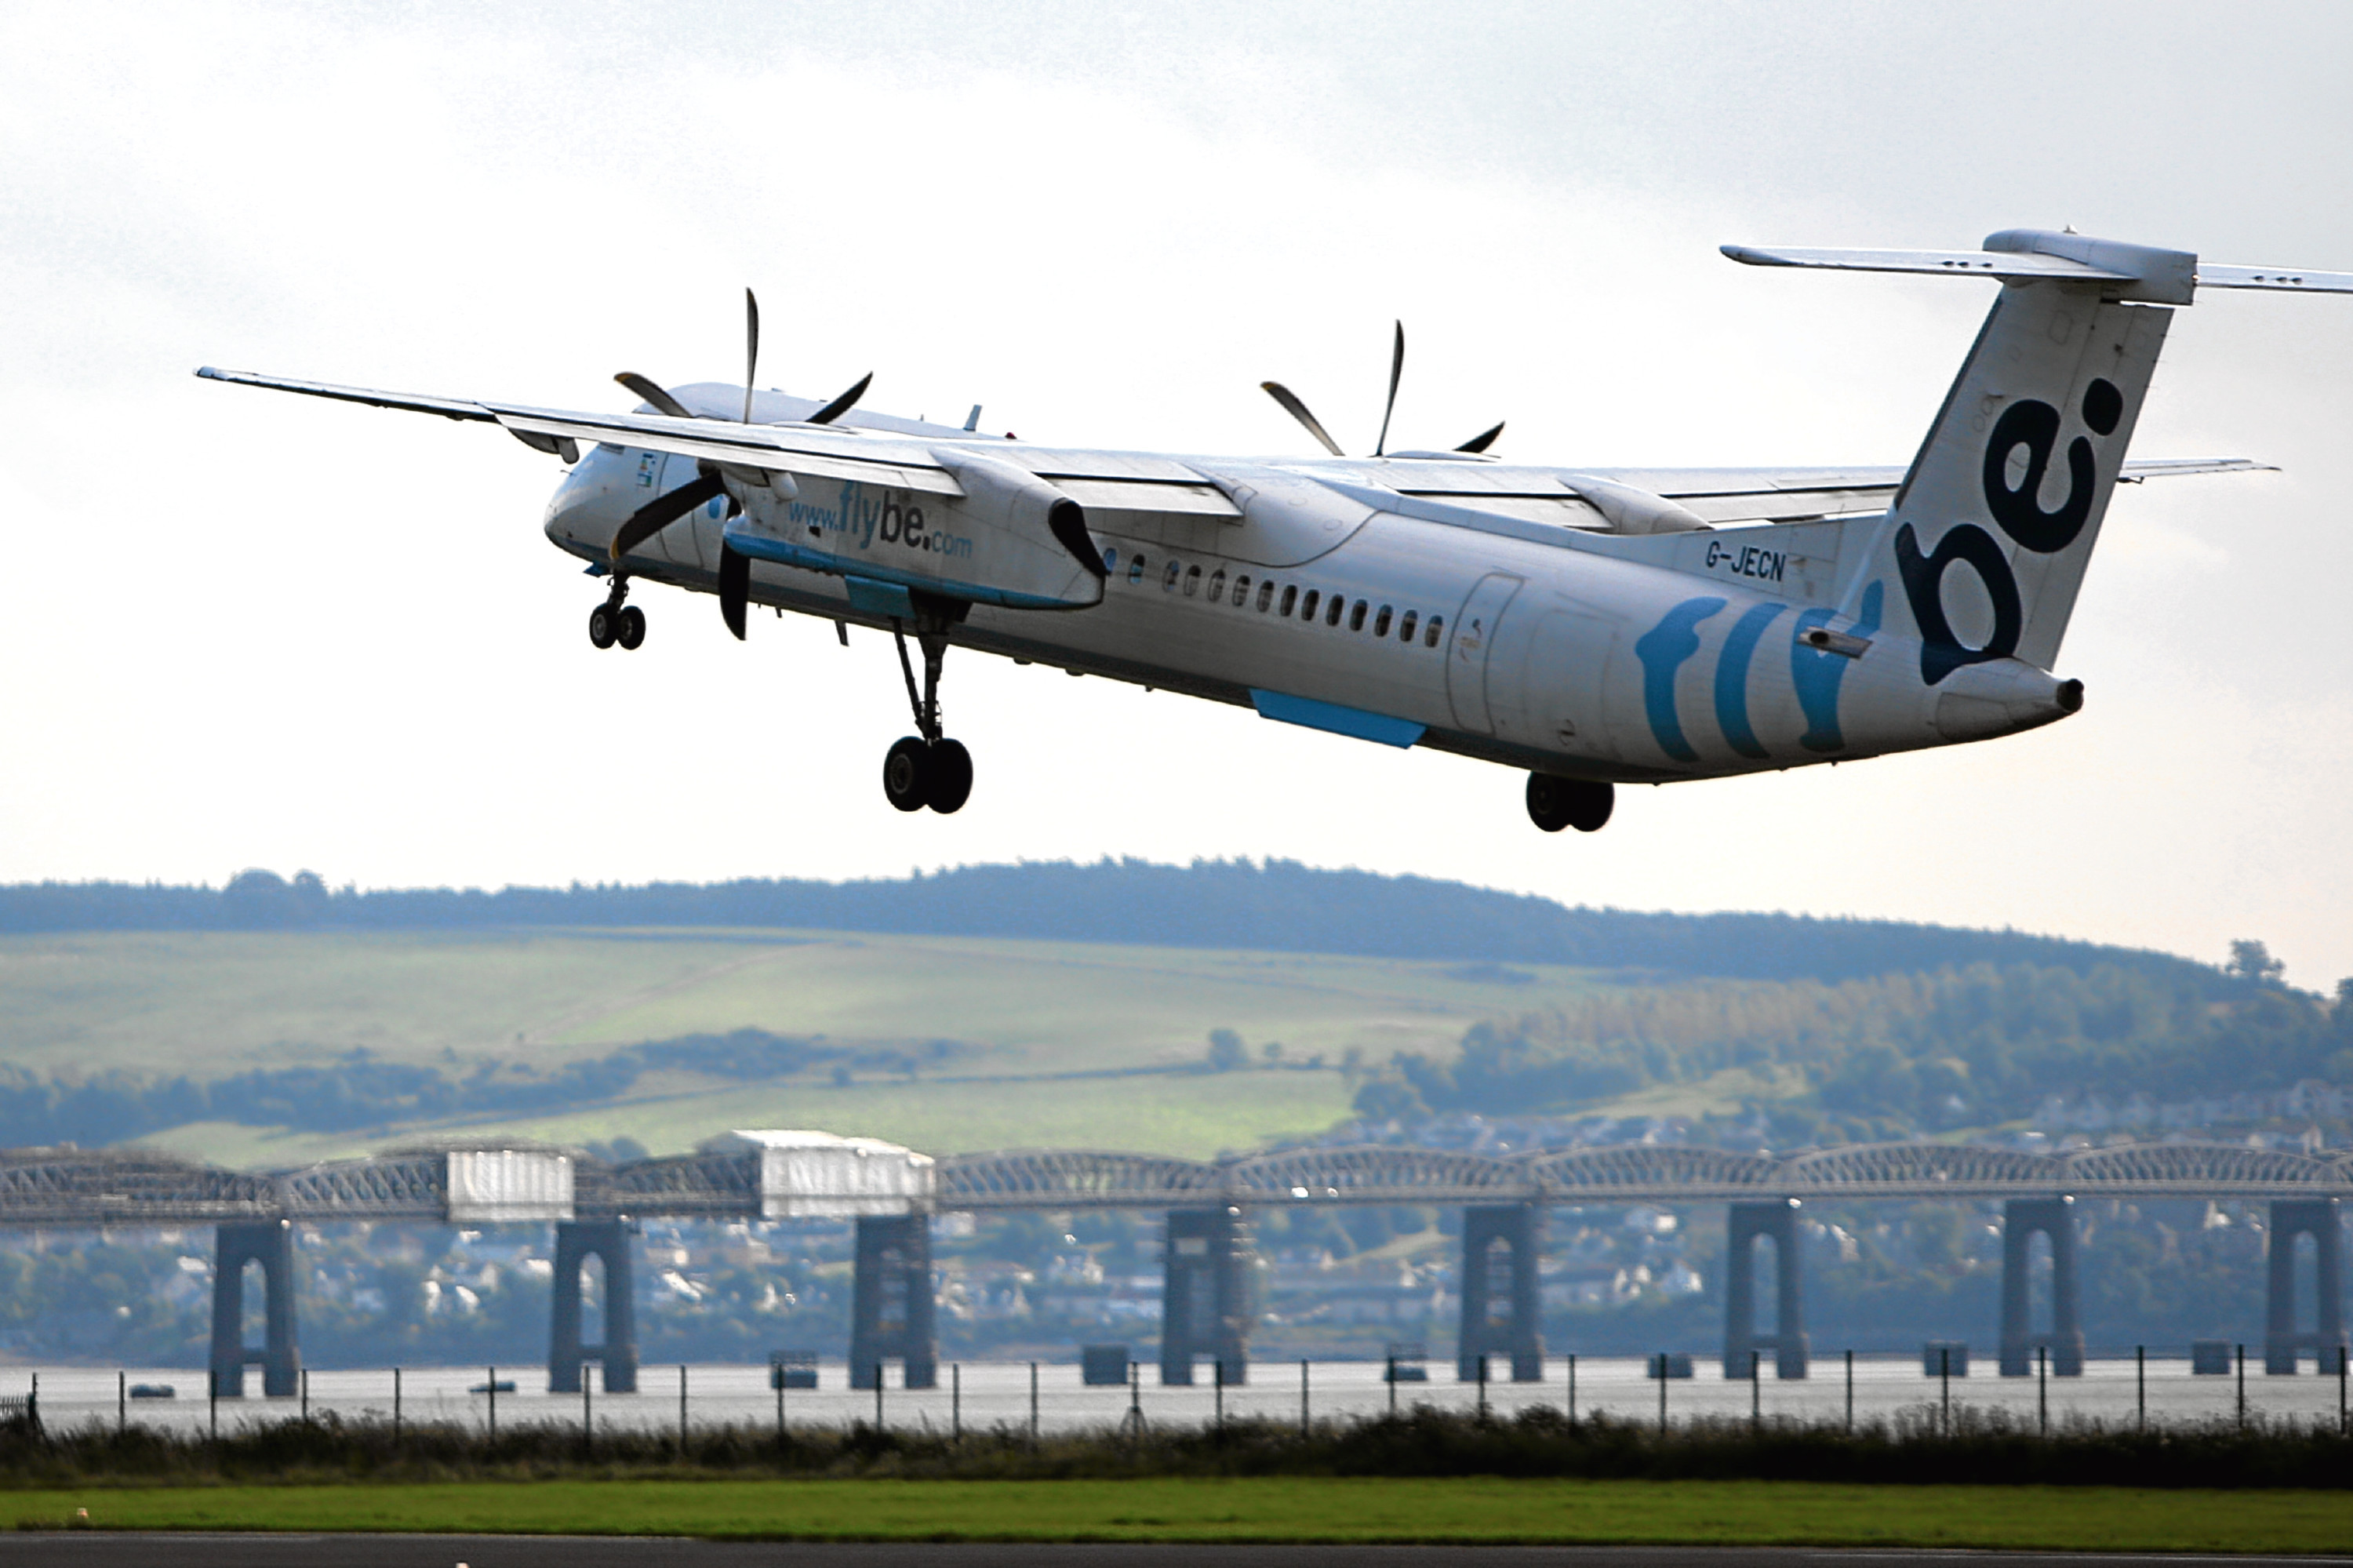 A Flybe aircraft takes off from Dundee Airport